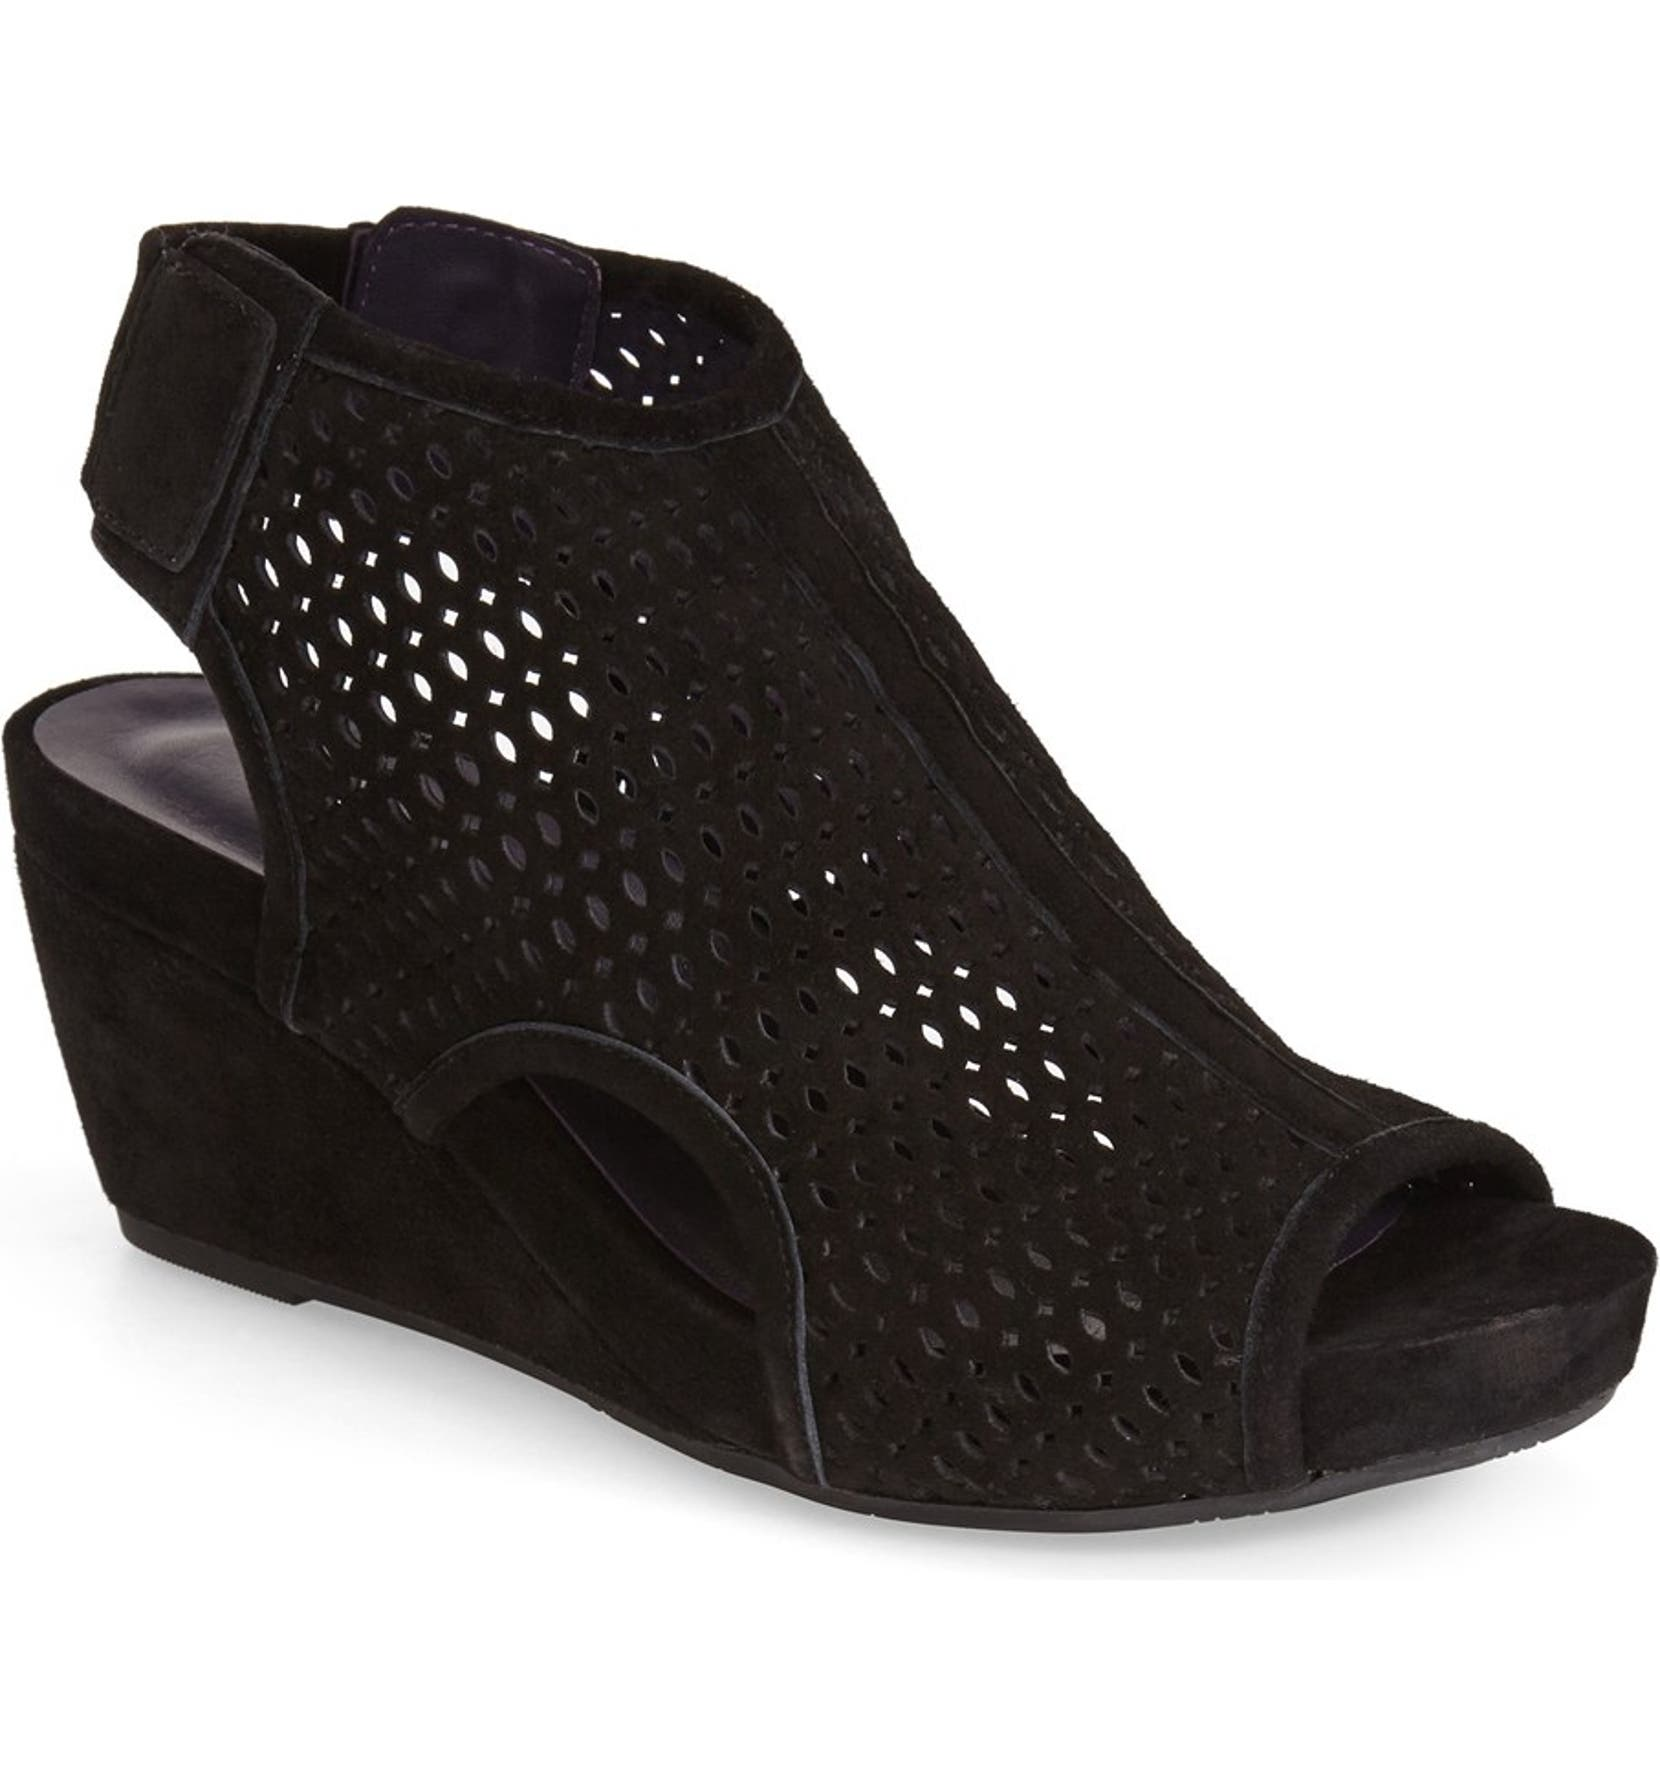 0bba9035755 VANELi  Inez  Wedge Sandal (Women)